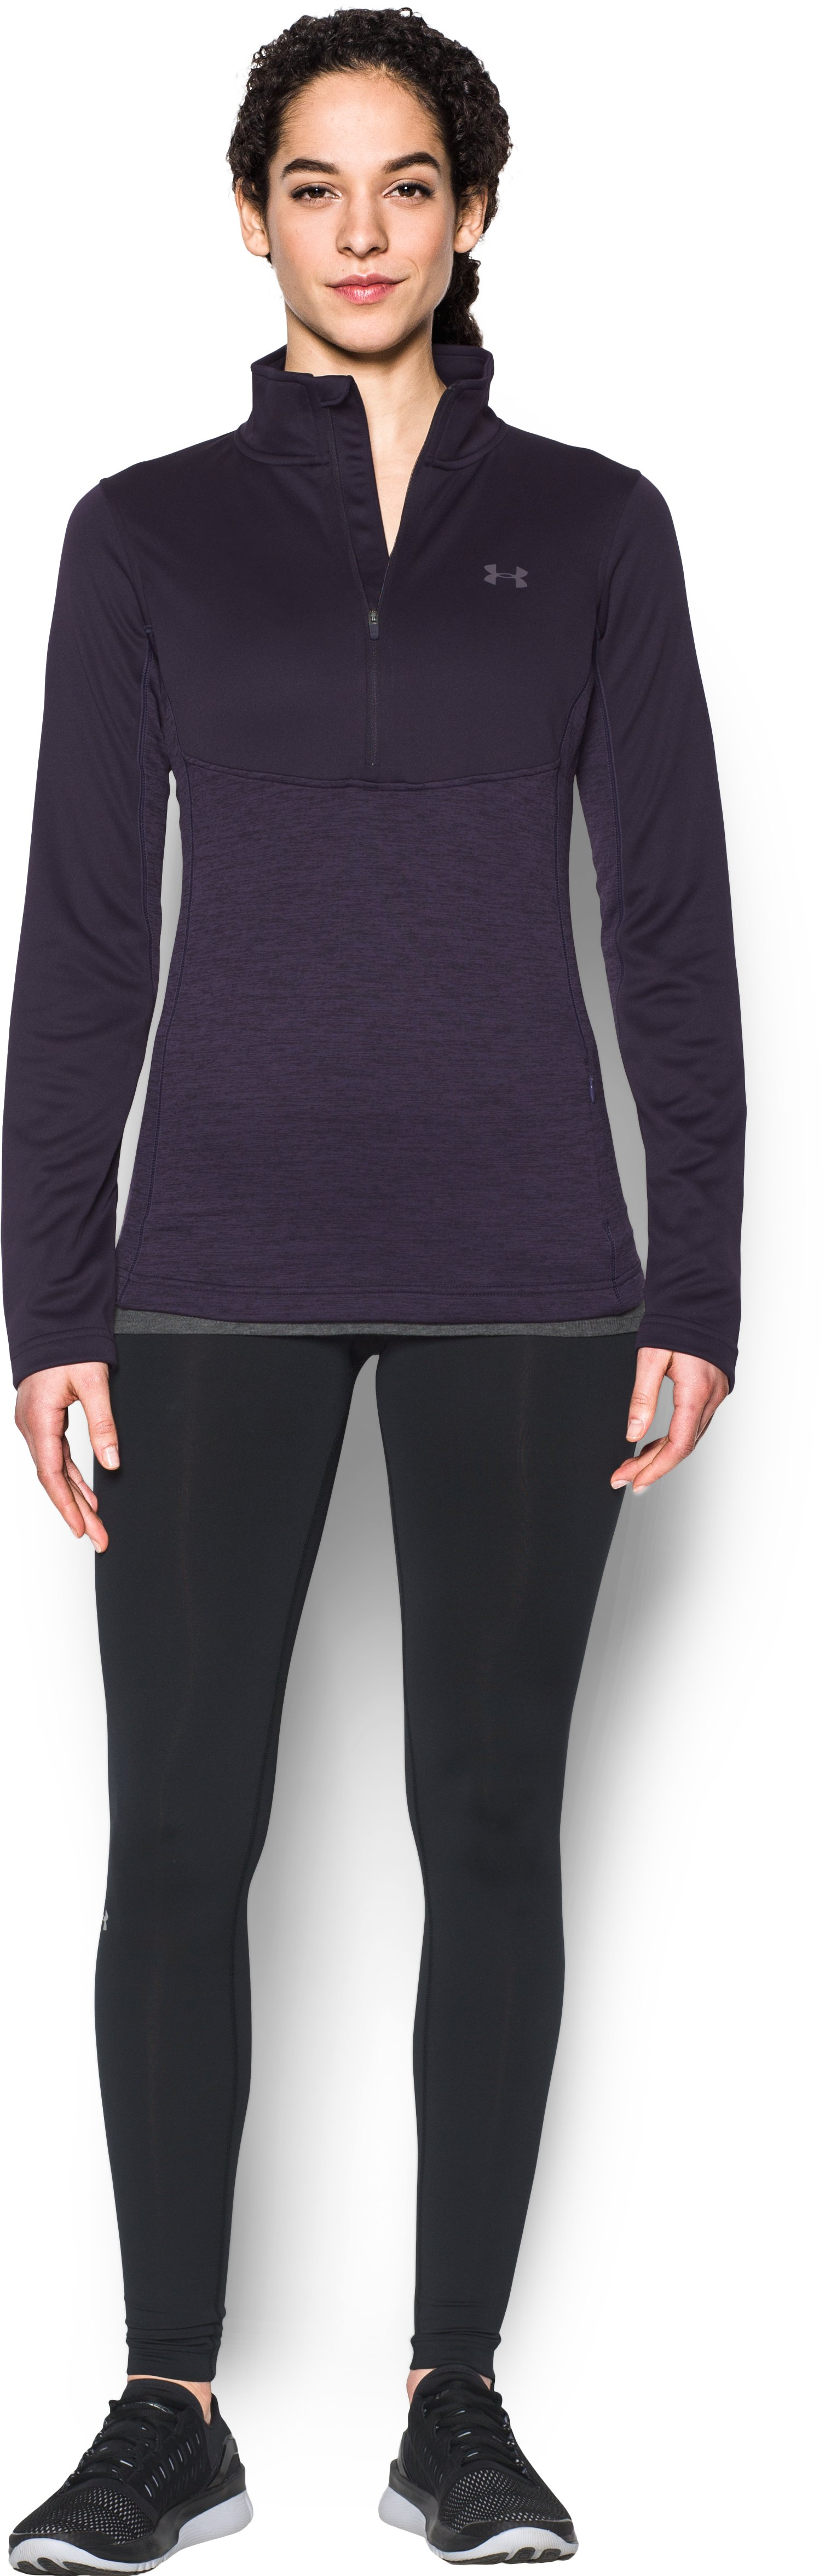 Women's UA Gamutlite 1/2 Zip, IMPERIAL PURPLE, zoomed image